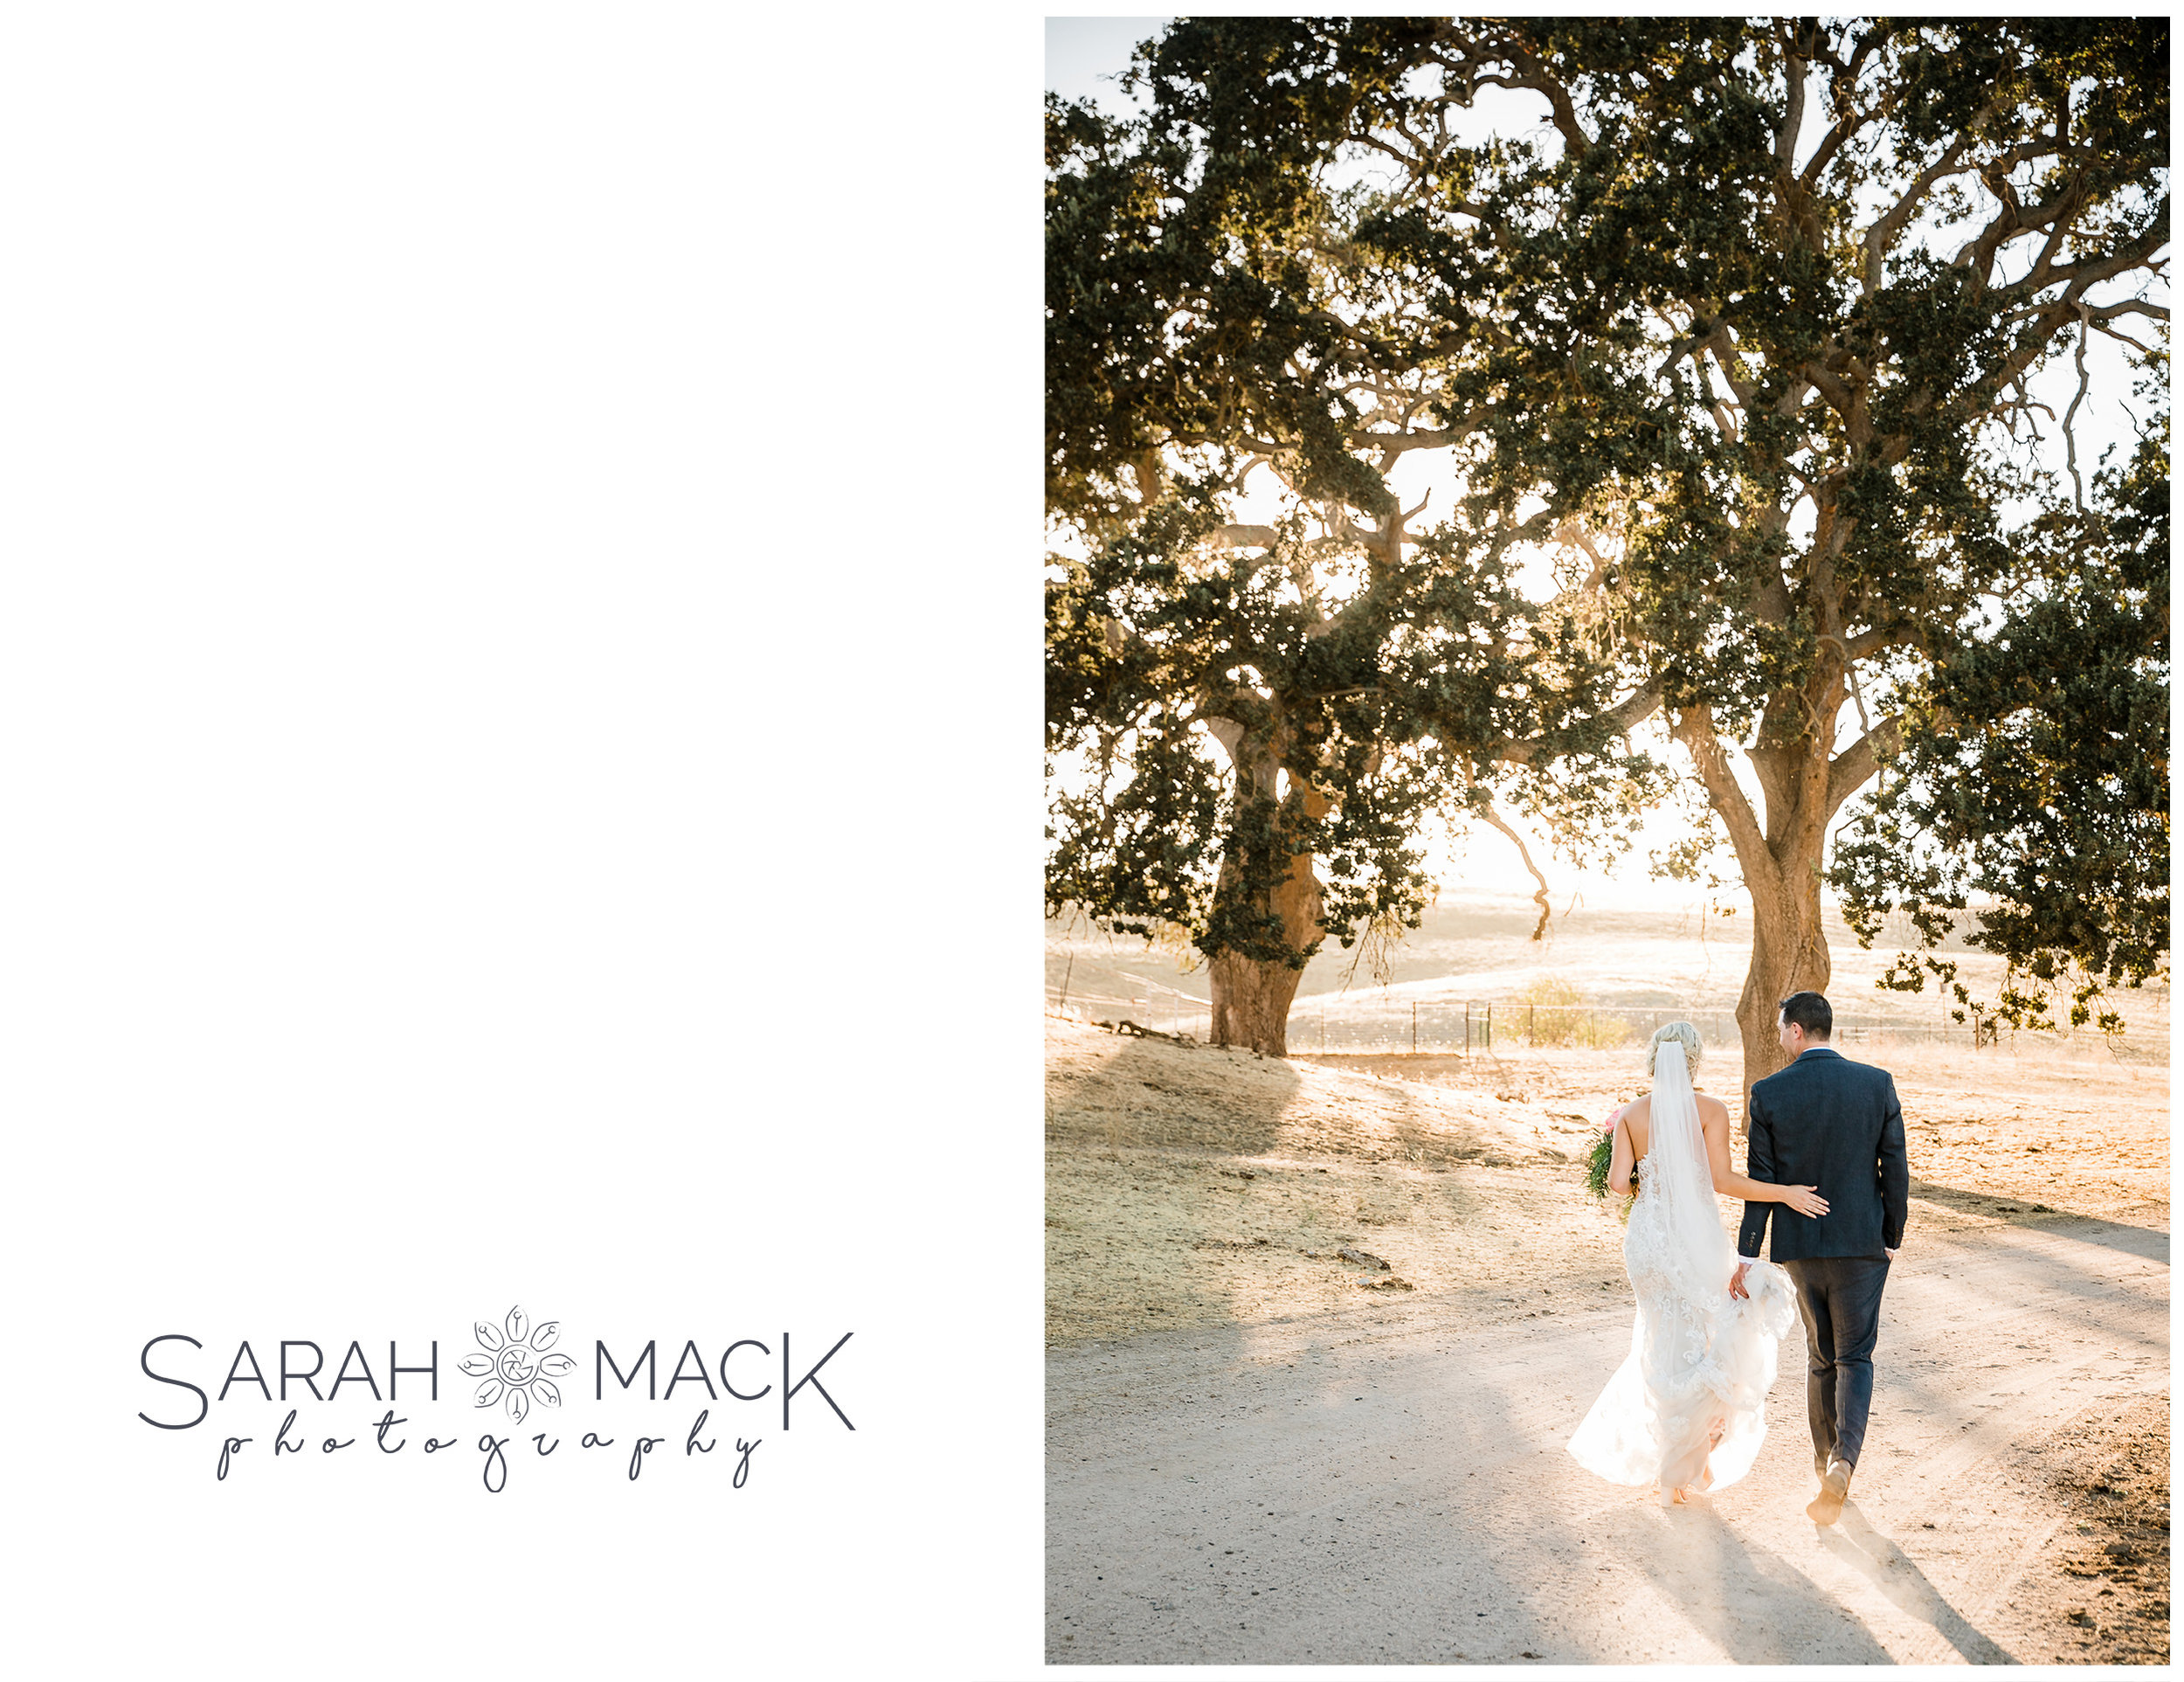 MA-Chandler-Ranch-Paso-Robles-Wedding-Photography-43.jpg